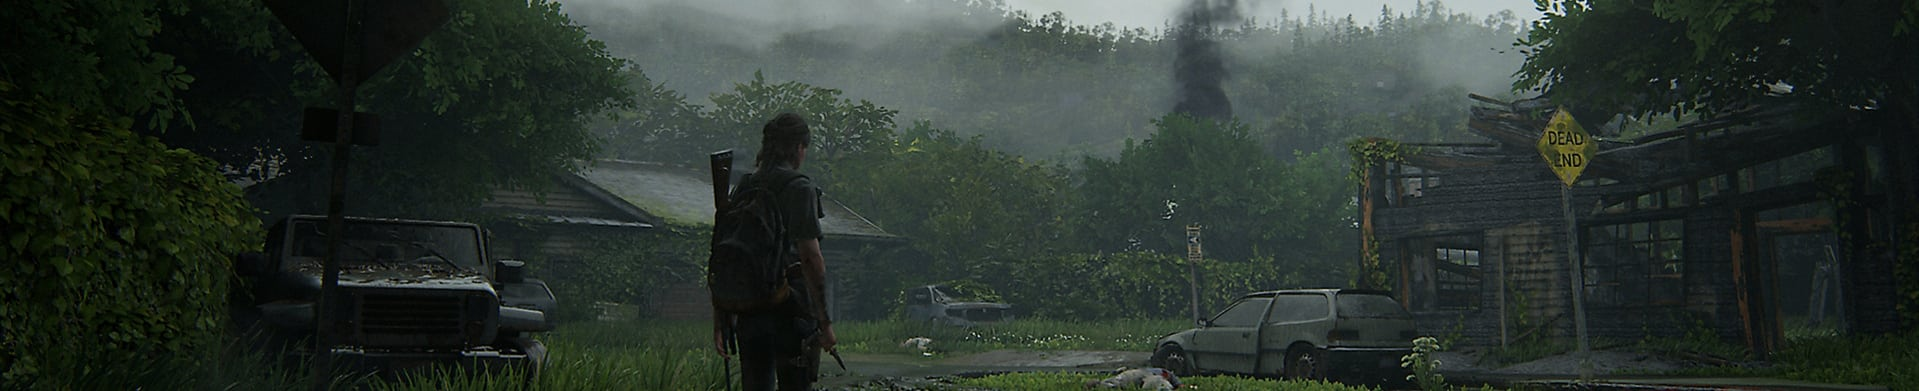 VIRTUOS CONTRIBUTES TO THE LAST OF US: PART II'S IMPRESSIVE IMAGERY